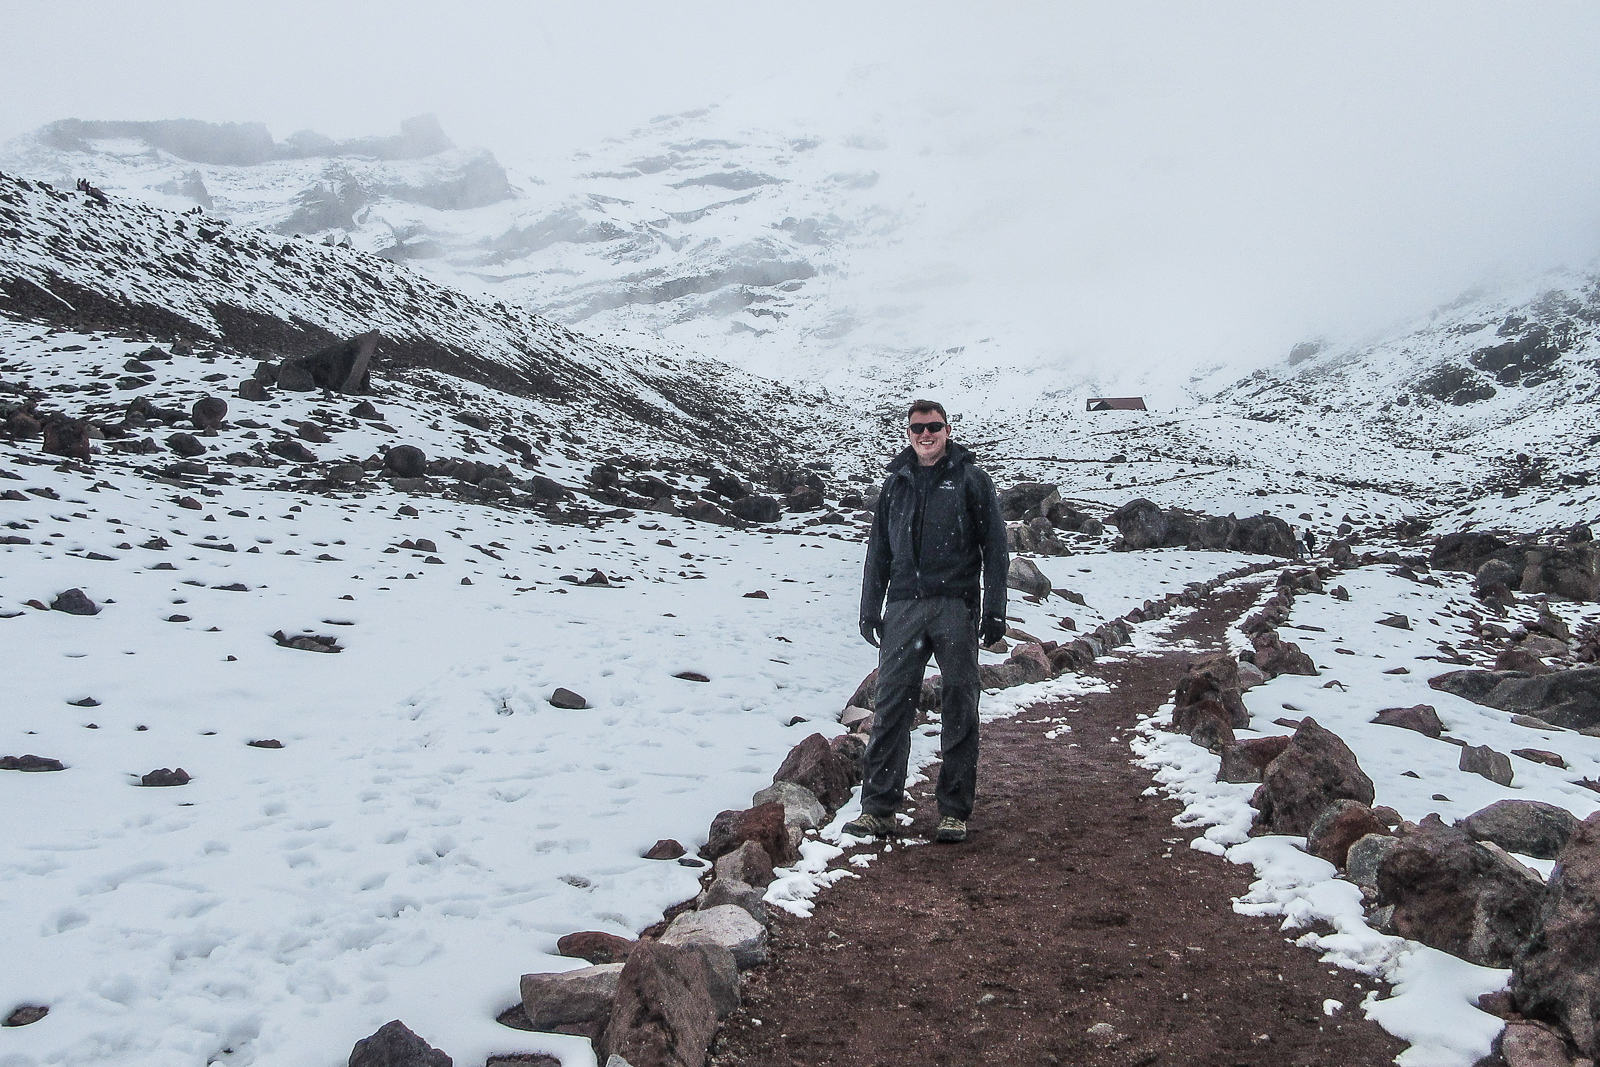 Climbing Mt Chimborazo, the highest mountain in Ecuador. Things to do in South America